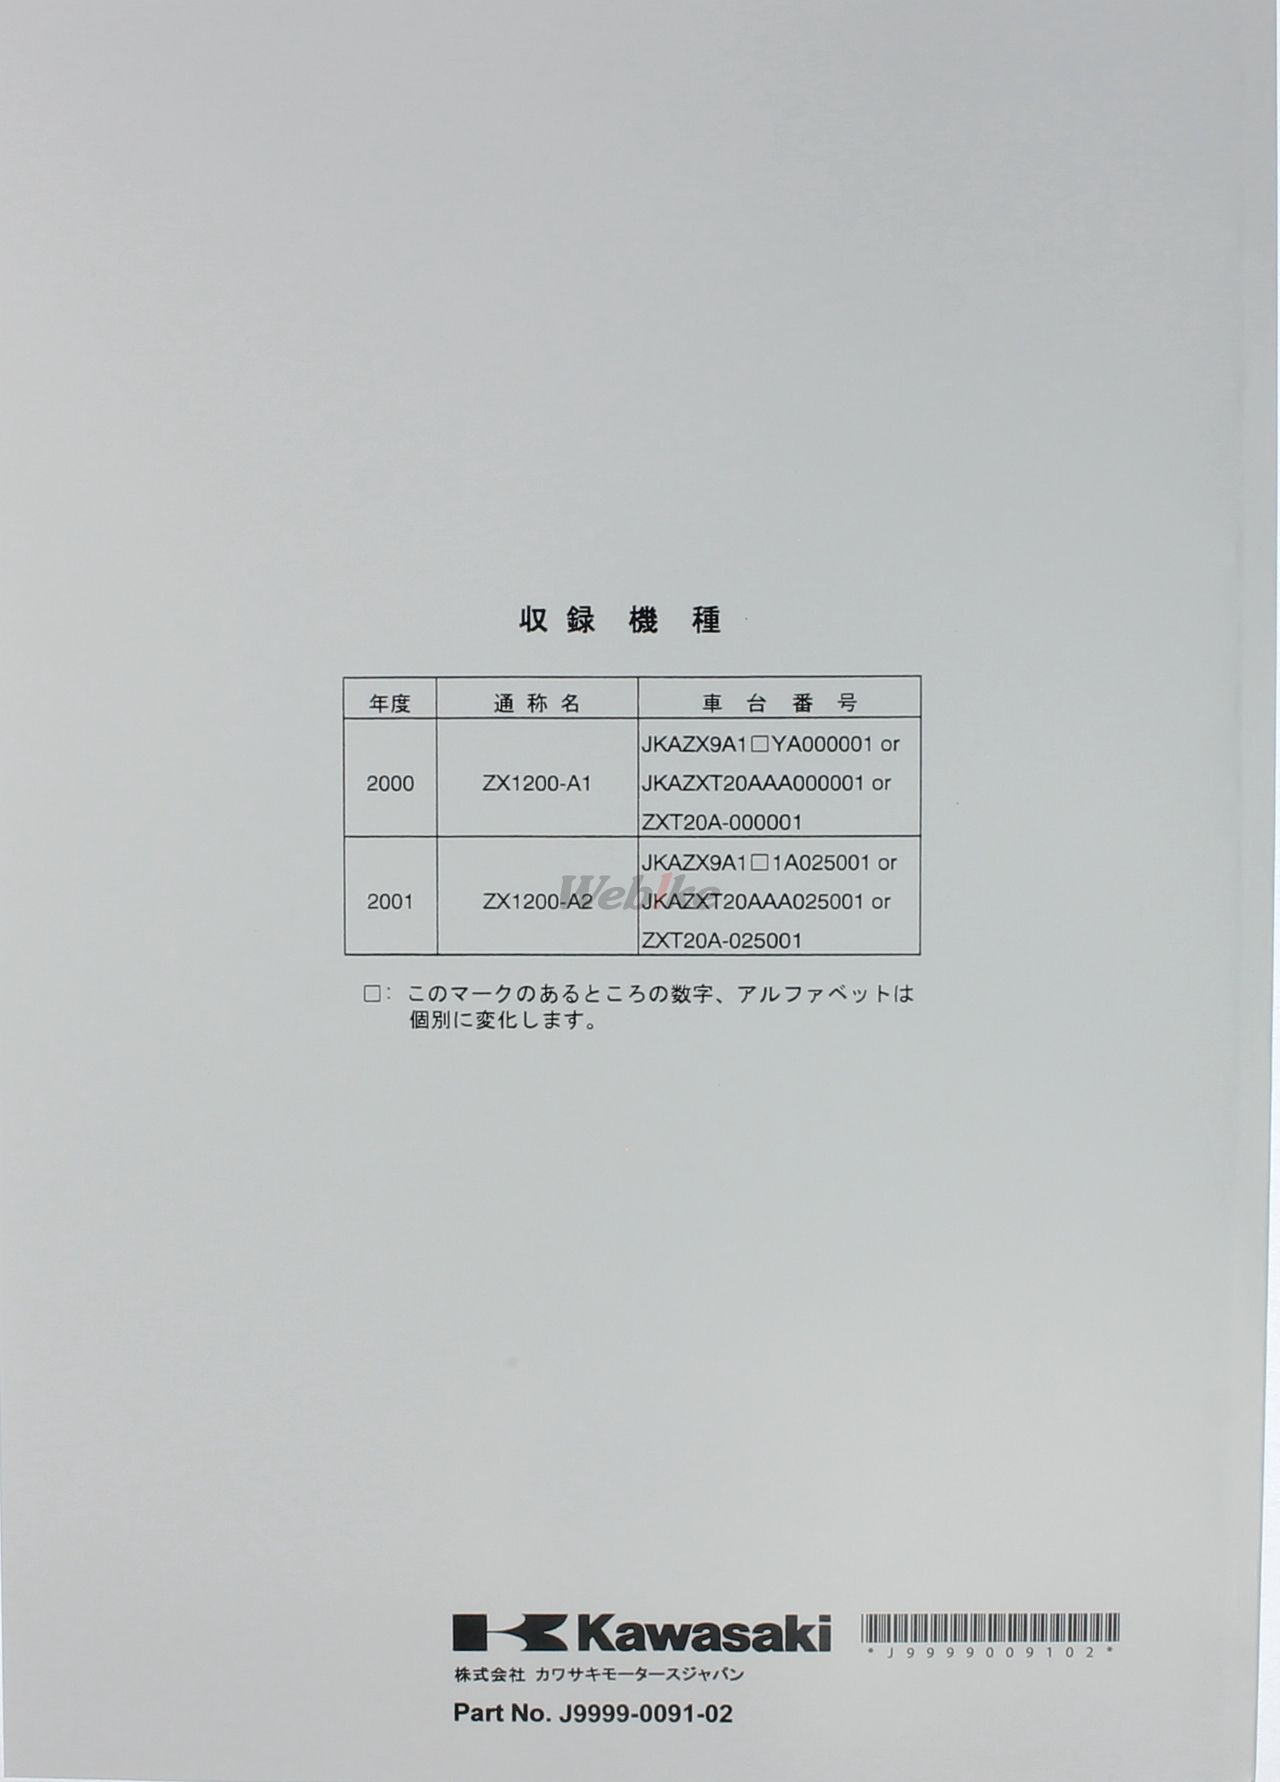 Kawasaki Service Manual Base Version Japanese J9999 0091 02 2005 Ranger Wiring Diagram Basic Page 1 Of